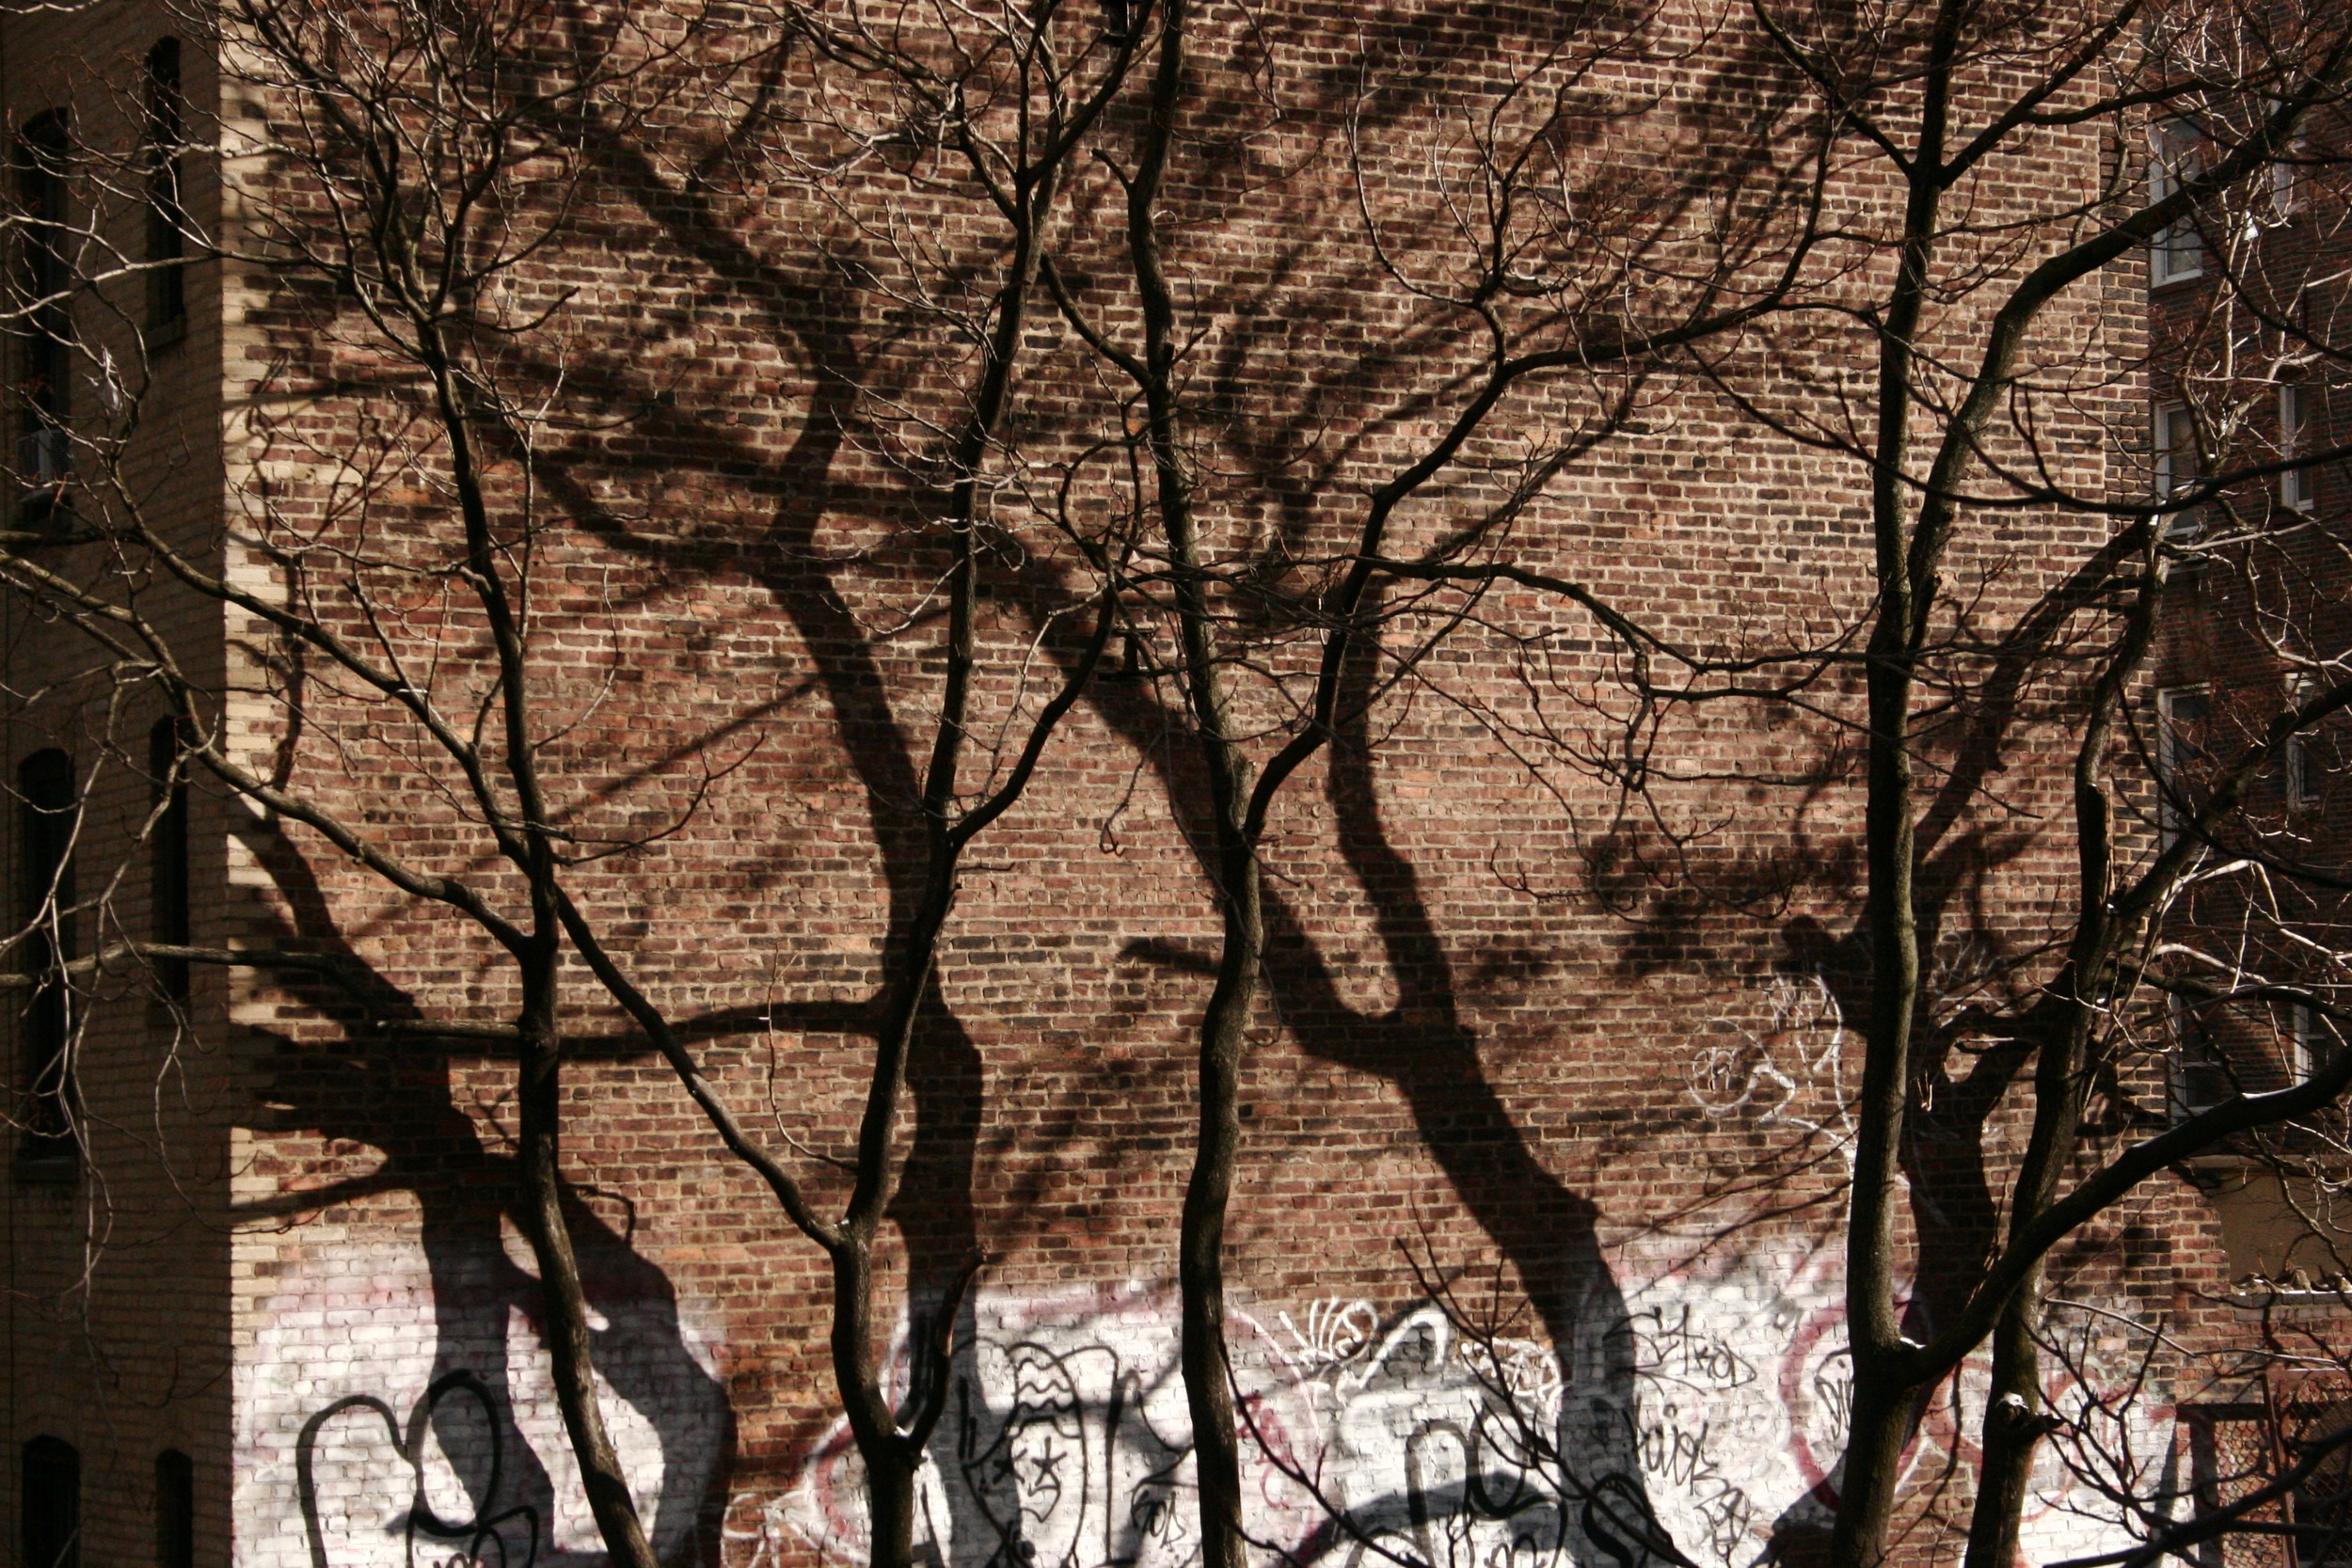 tress-casting-shadows-on-brick-nyc-webecurry.jpg